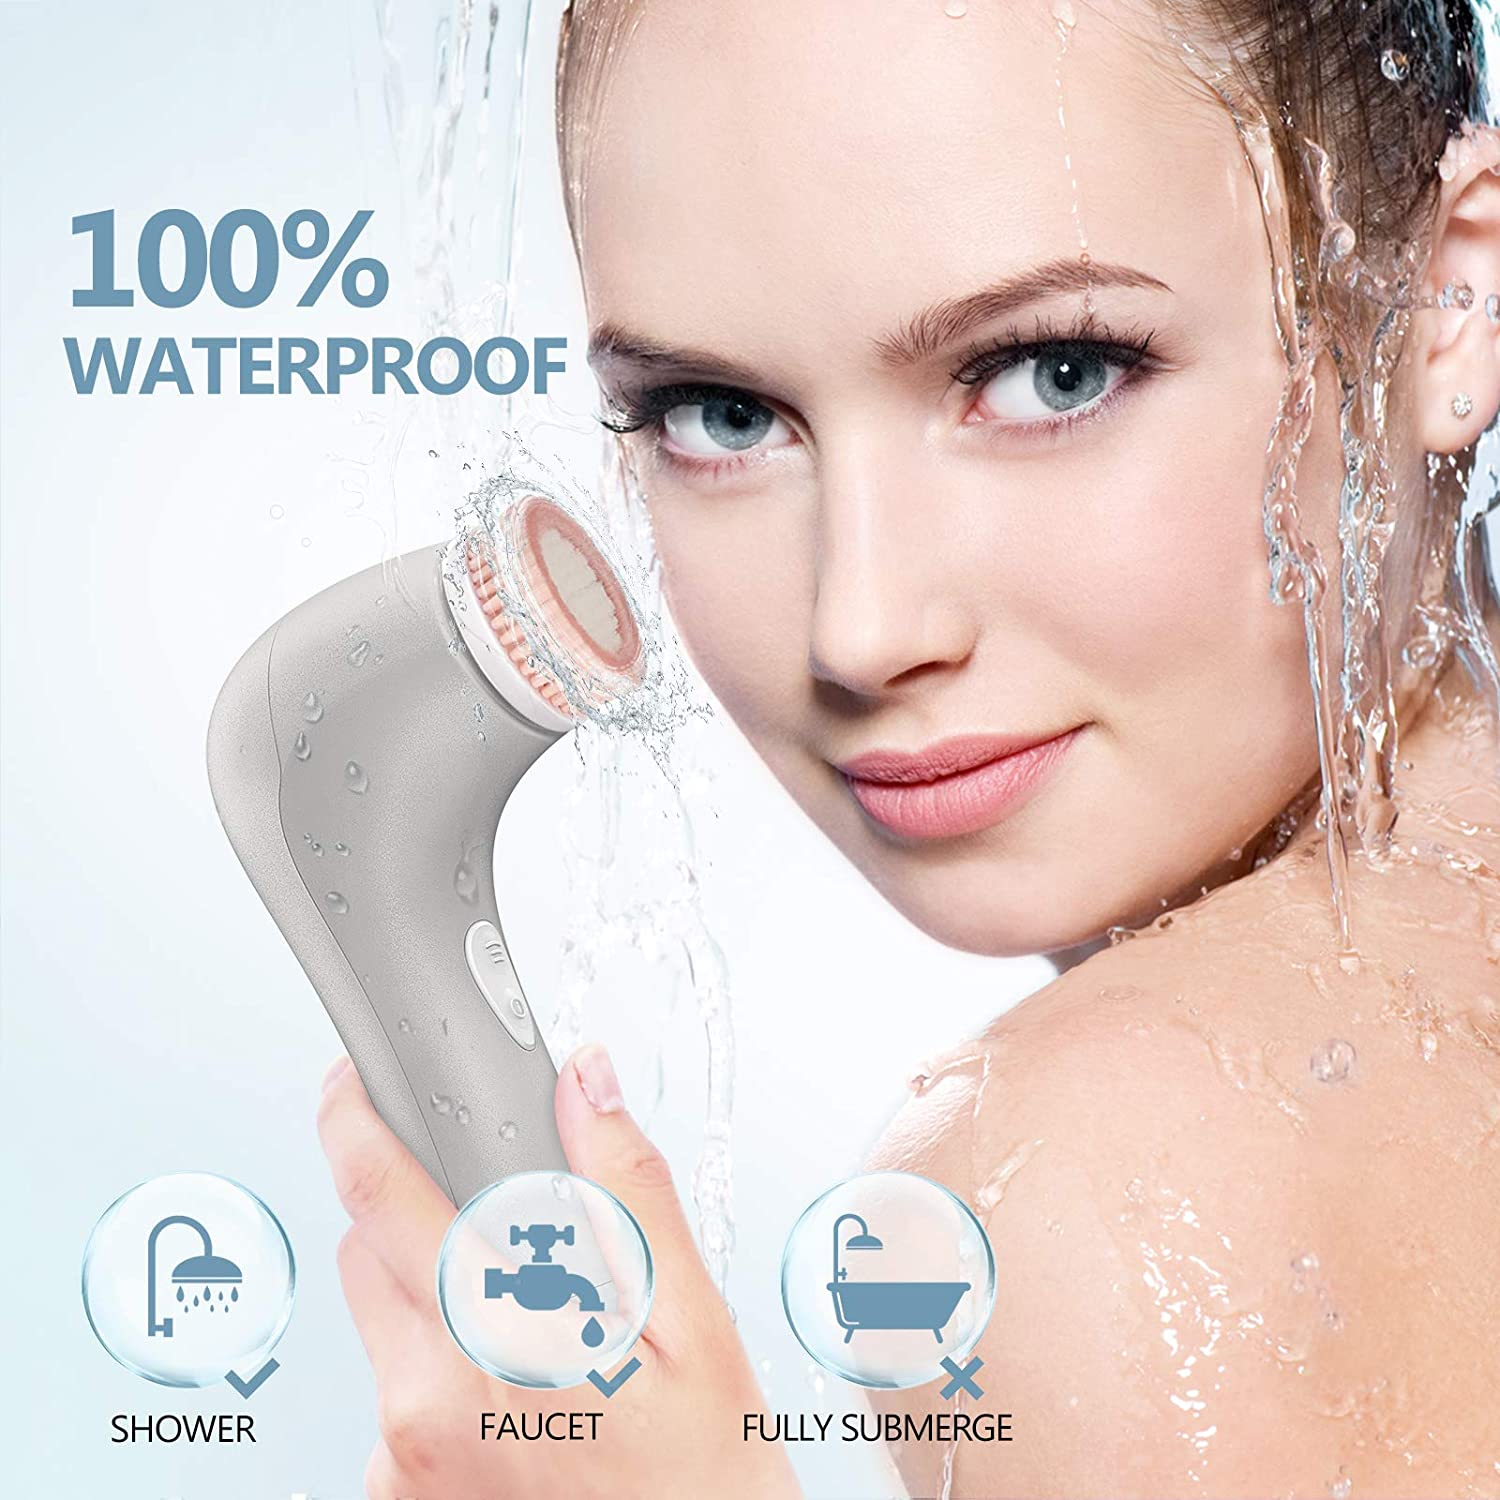 Facial Cleansing Brush, Waterproof Face Wash Spin Brush with 7 Brush Heads for Deep Cleansing, (Grey)